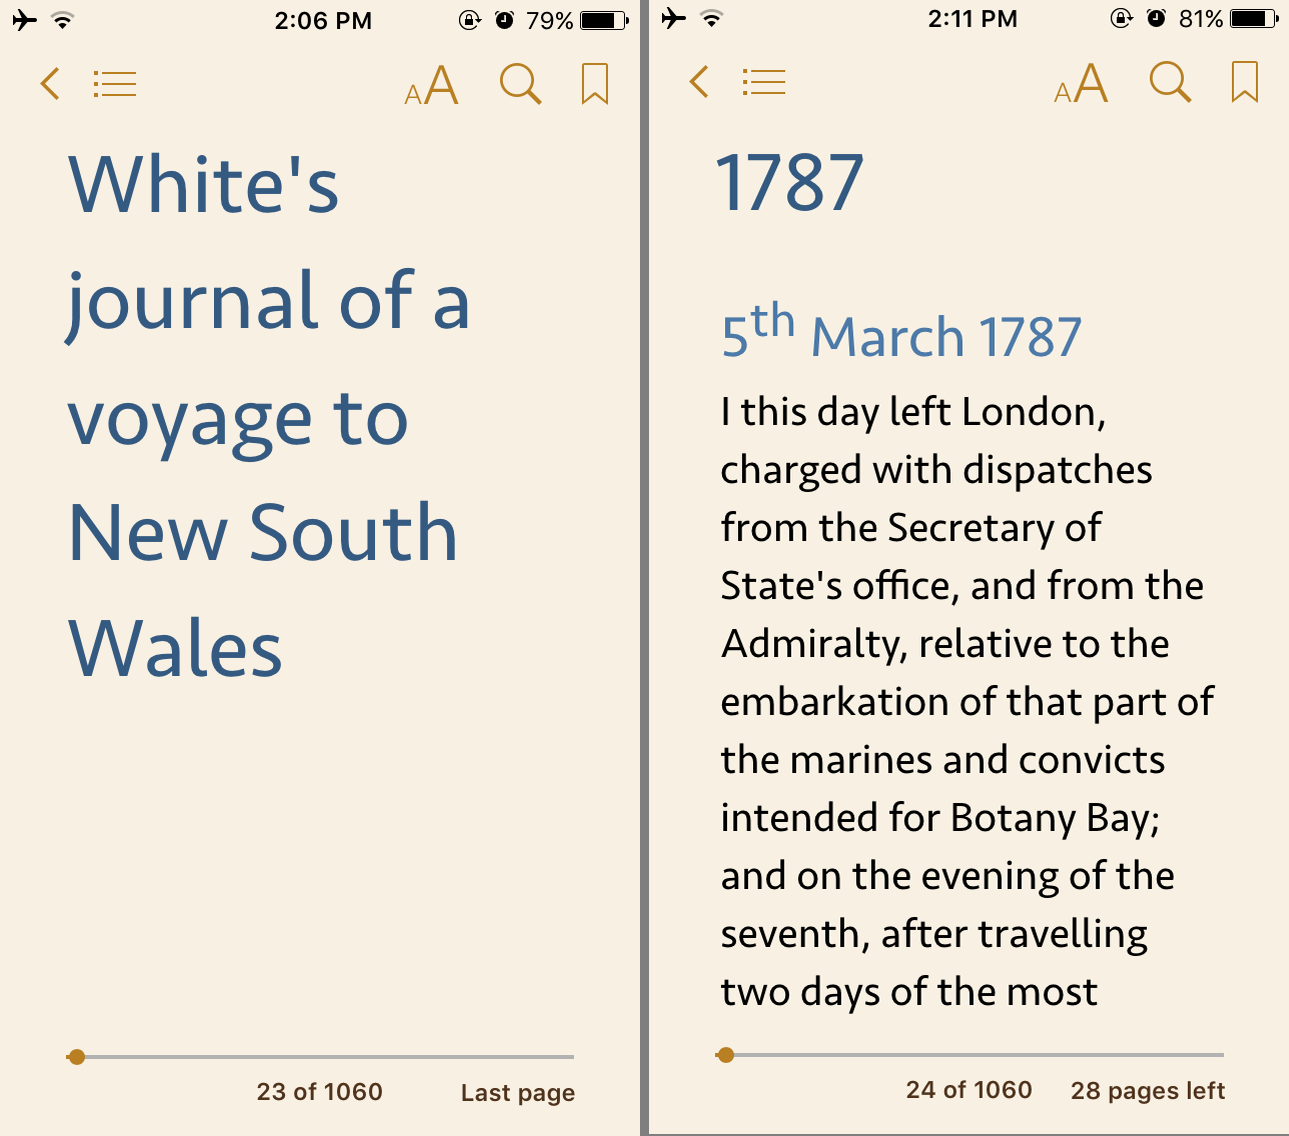 EPUB conversion: Screen capture of an EPUB ebook text on an iPhone 5 screen.